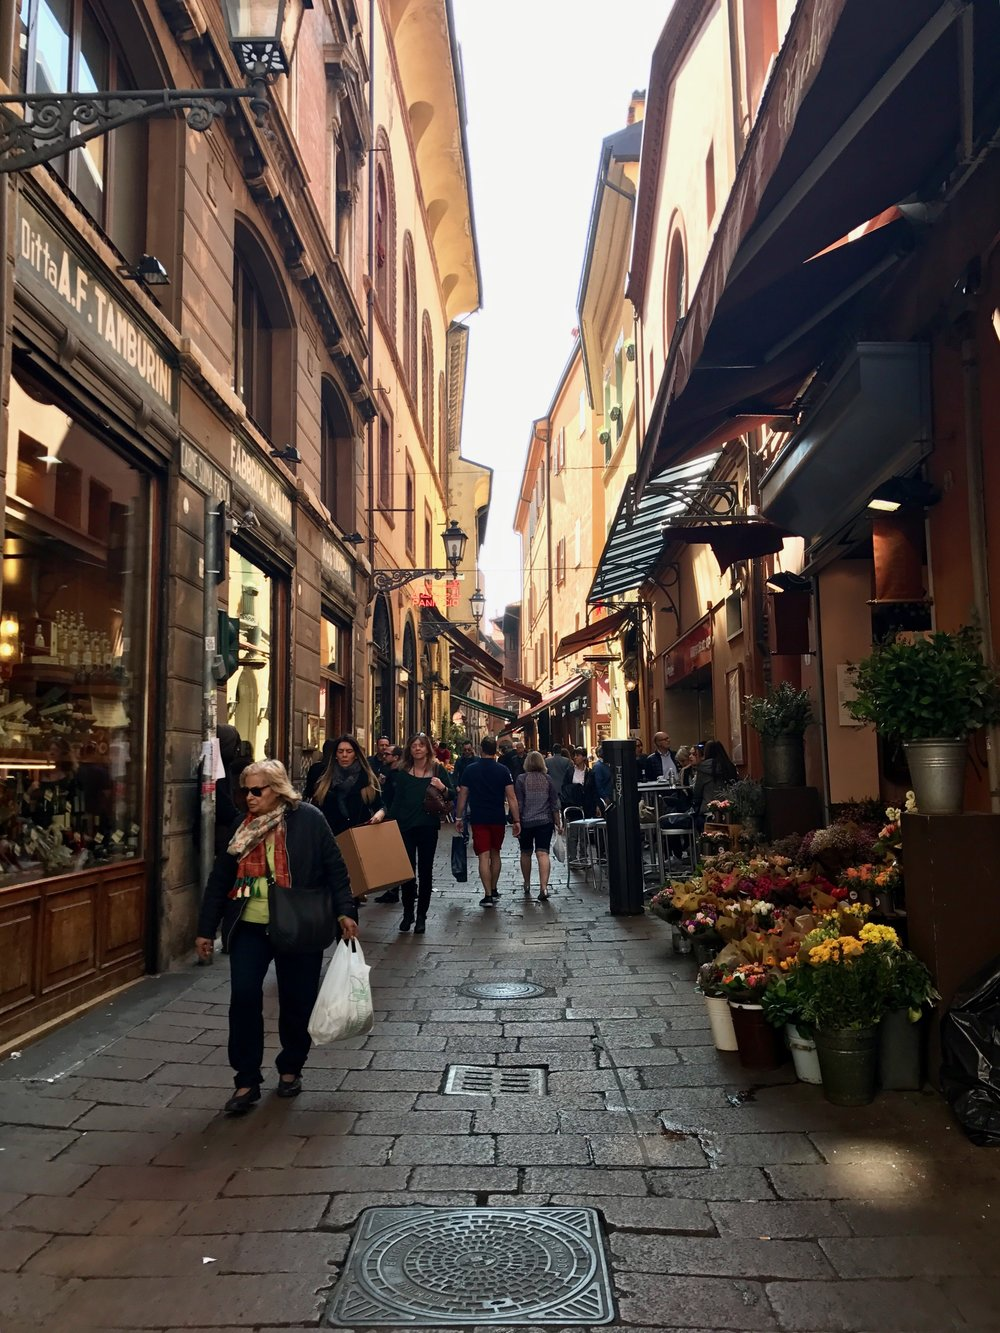 Citizens and tourists cruise the city streets of Bologna.